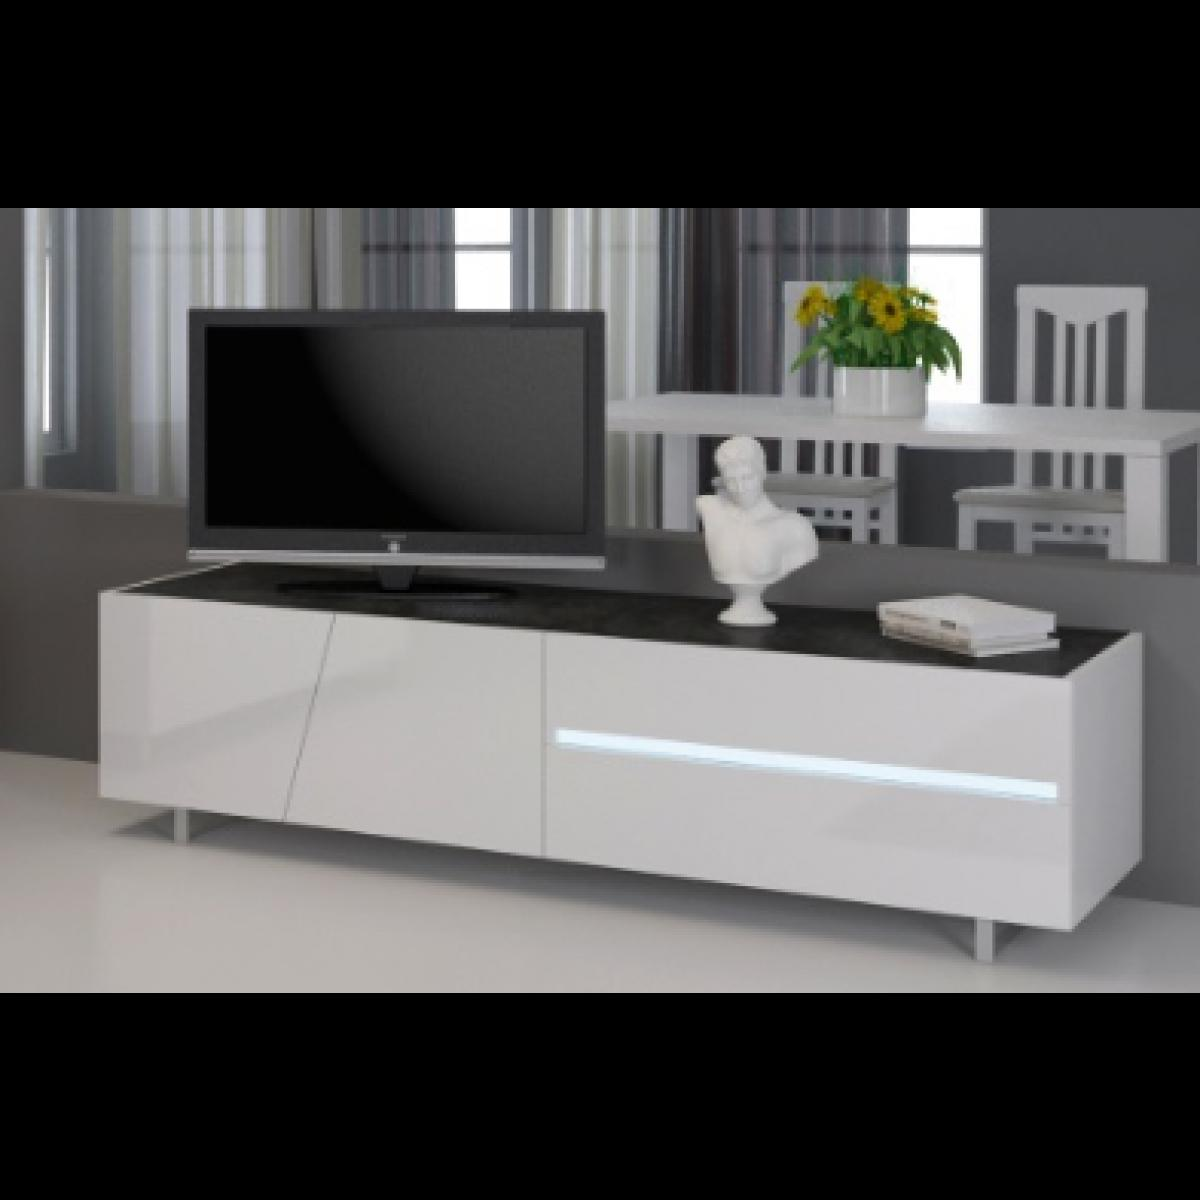 Meuble Tv Blanc Laqu 160 Cm Firstcdiscount # Meuble Tv Contemporain Blanc